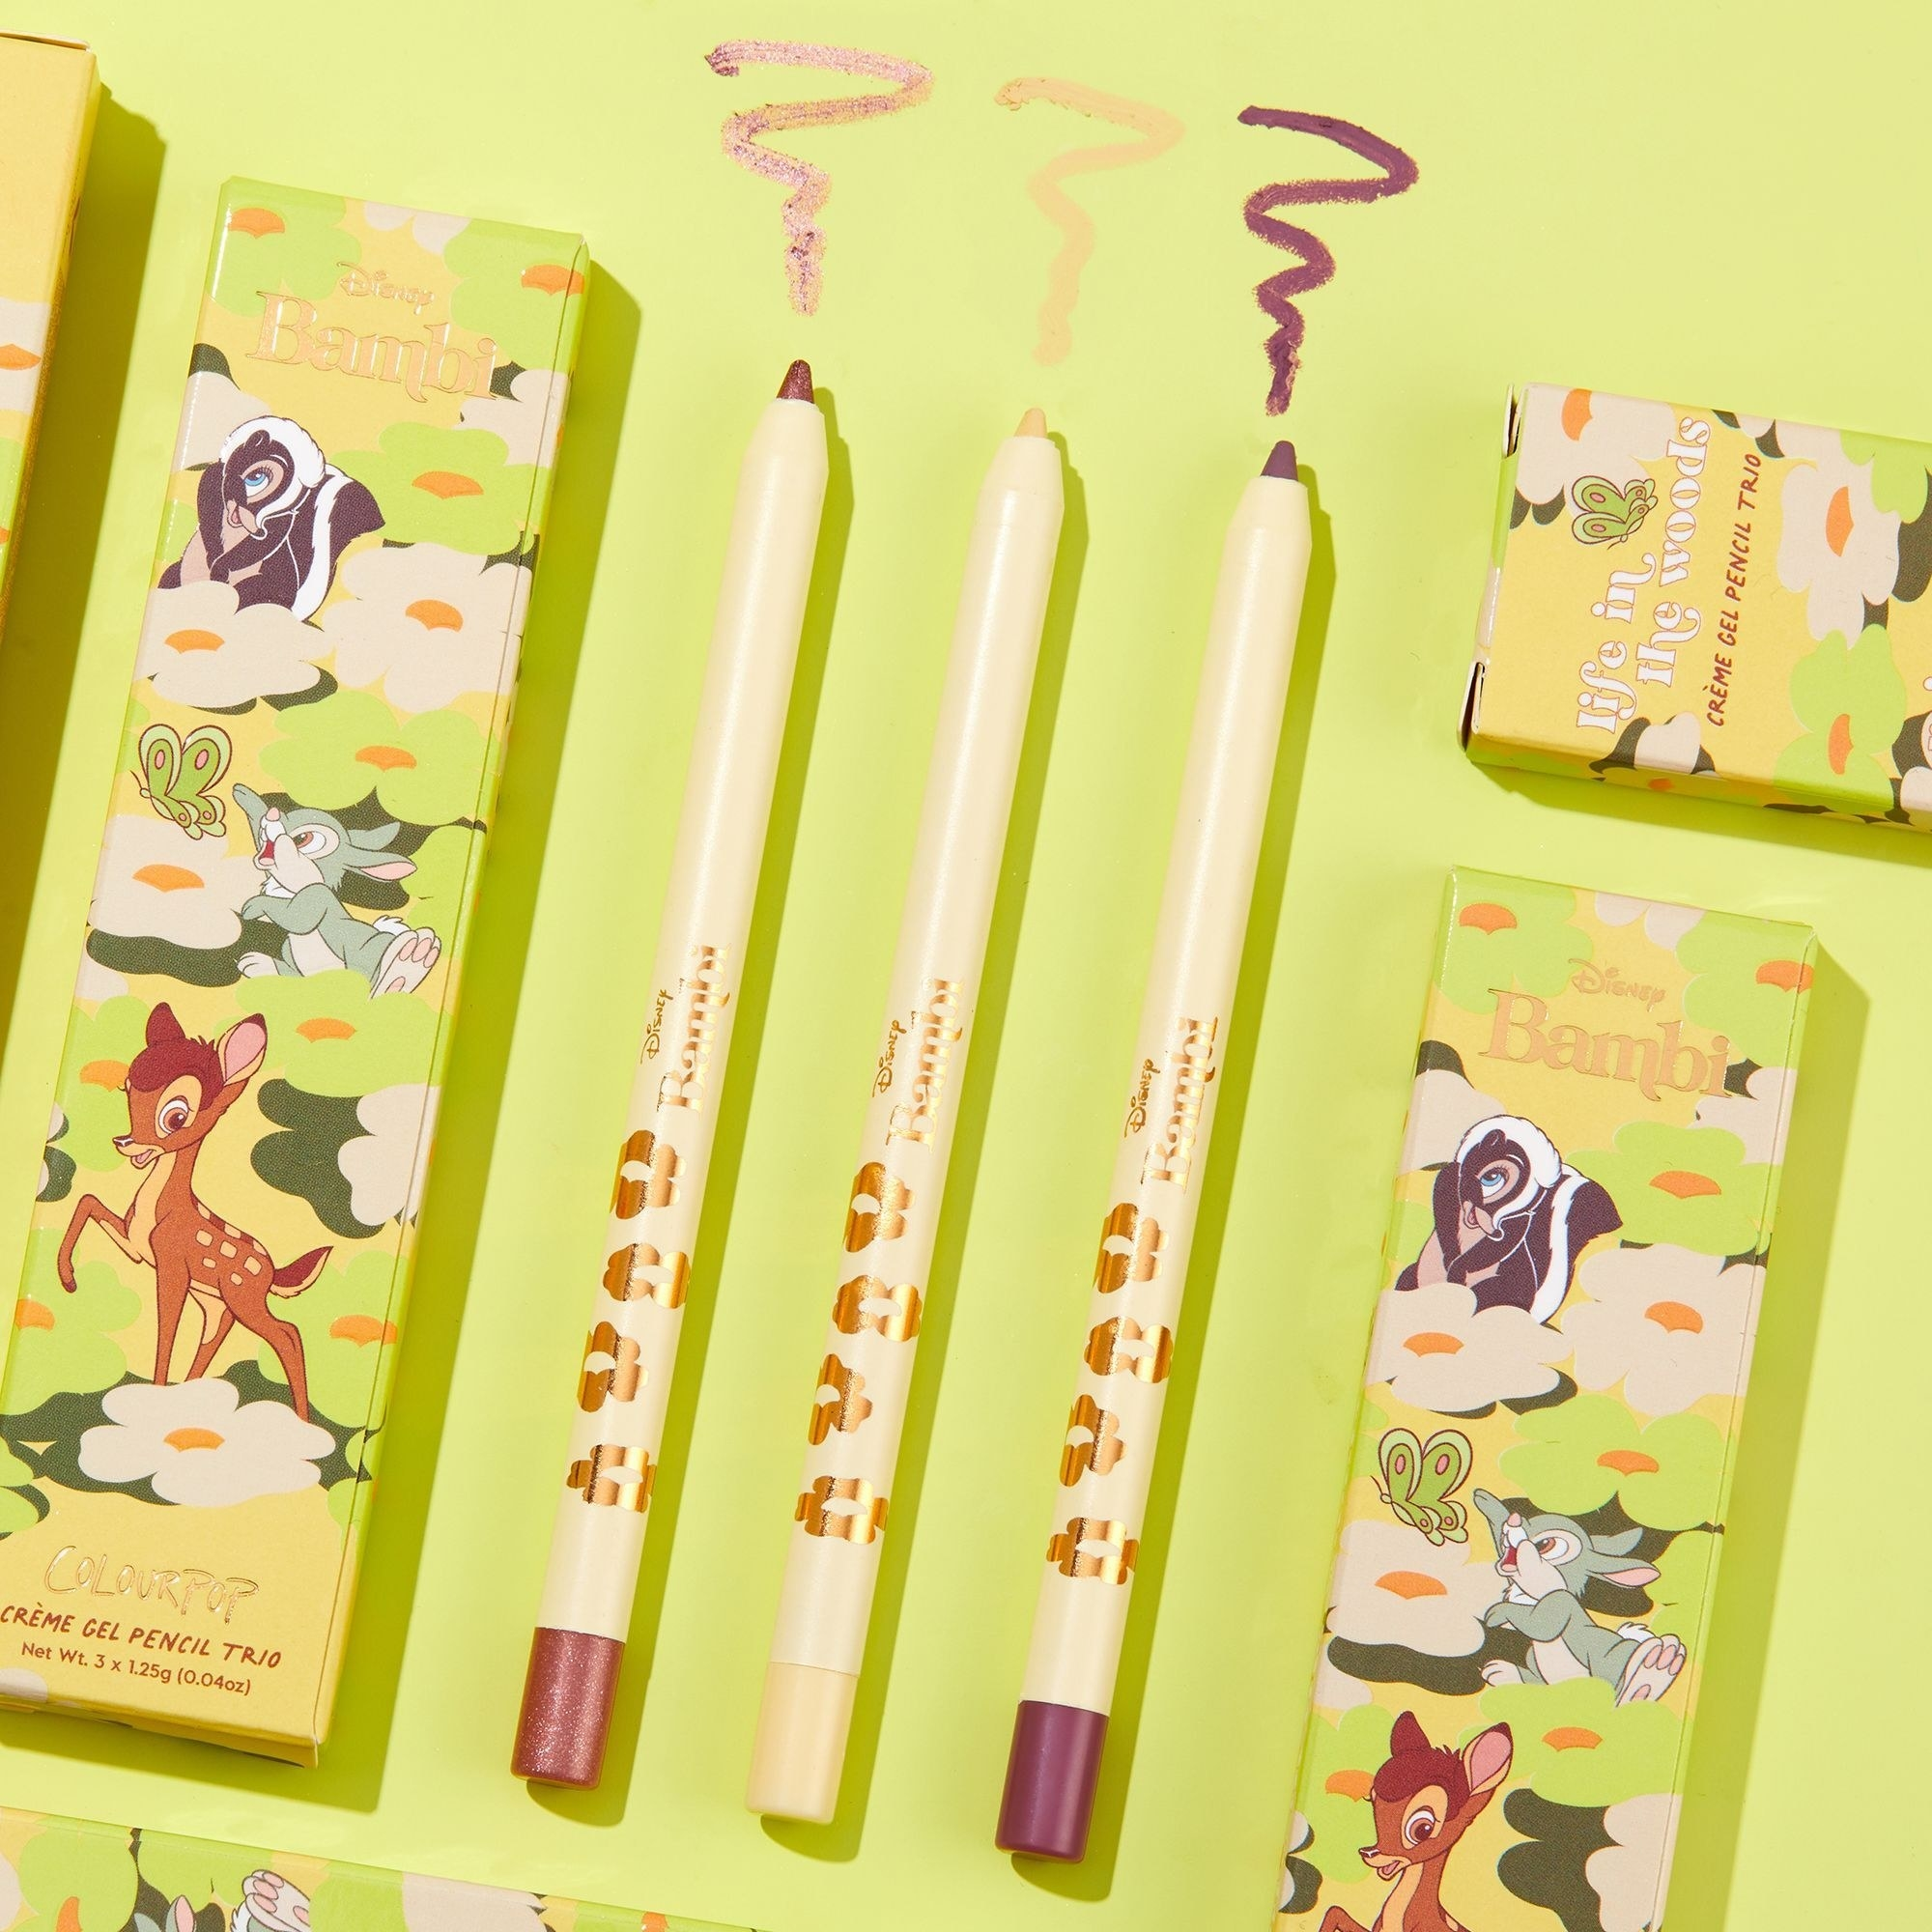 the set of liners with spring-themed packaging with bambi, flower, and thumper